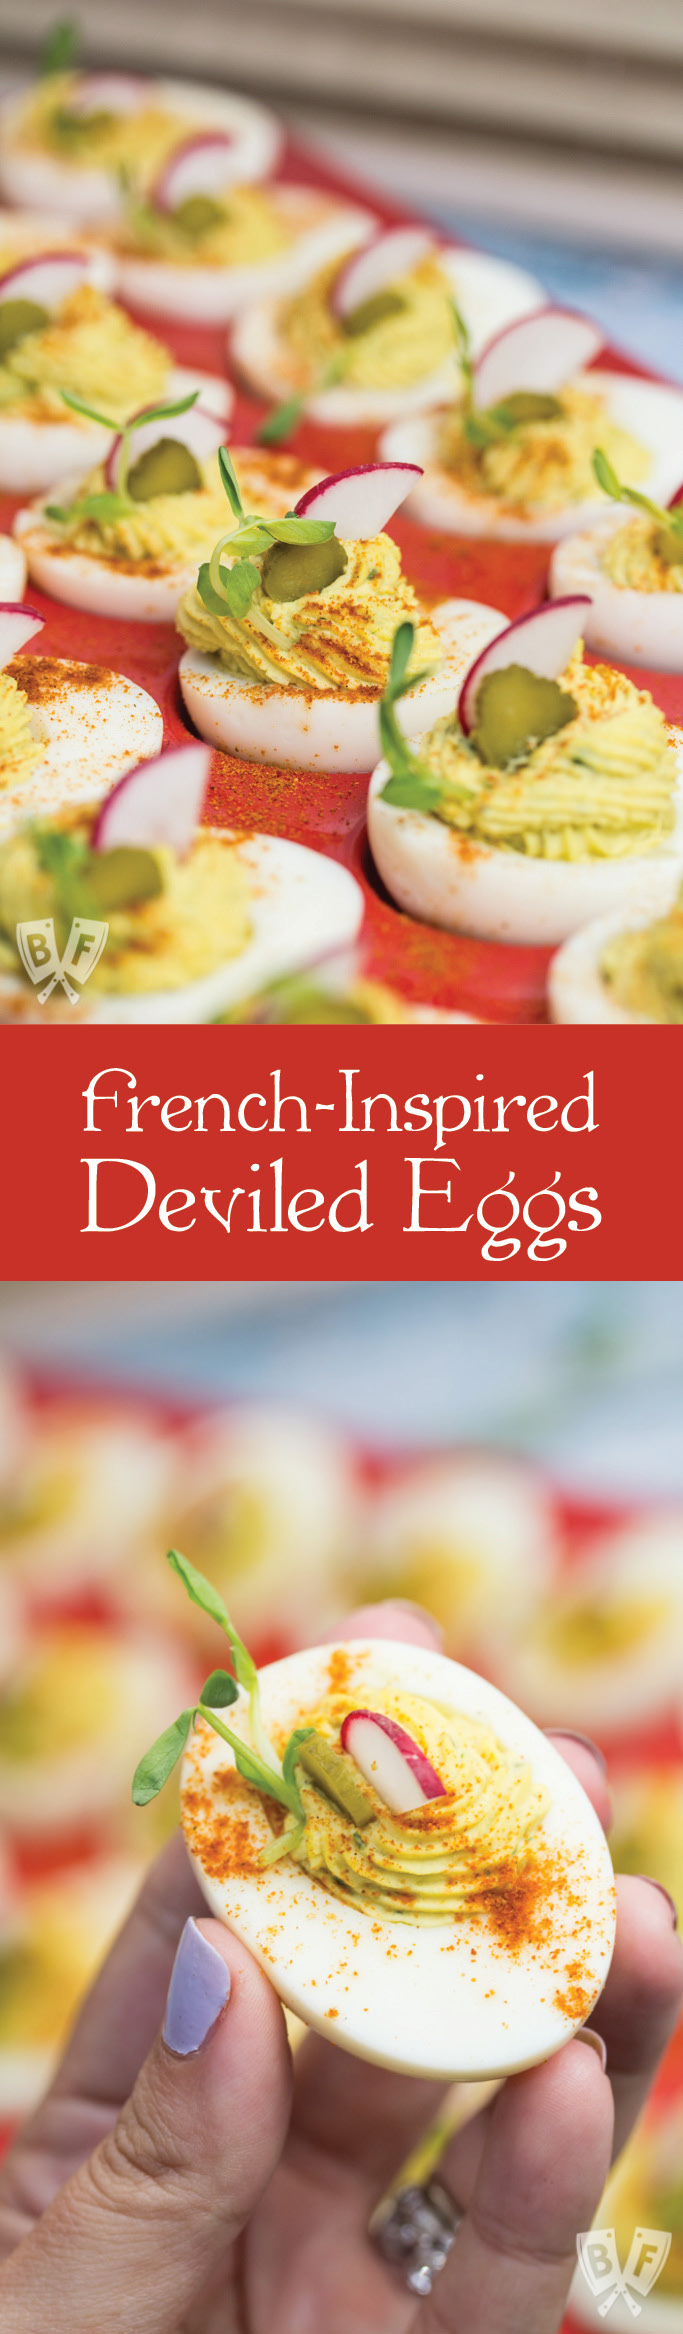 French-Inspired Deviled Eggs: These mayo-free beauties get a big boost of flavor from fresh tarragon, cornichons and dijon. #StonyfieldBlogger